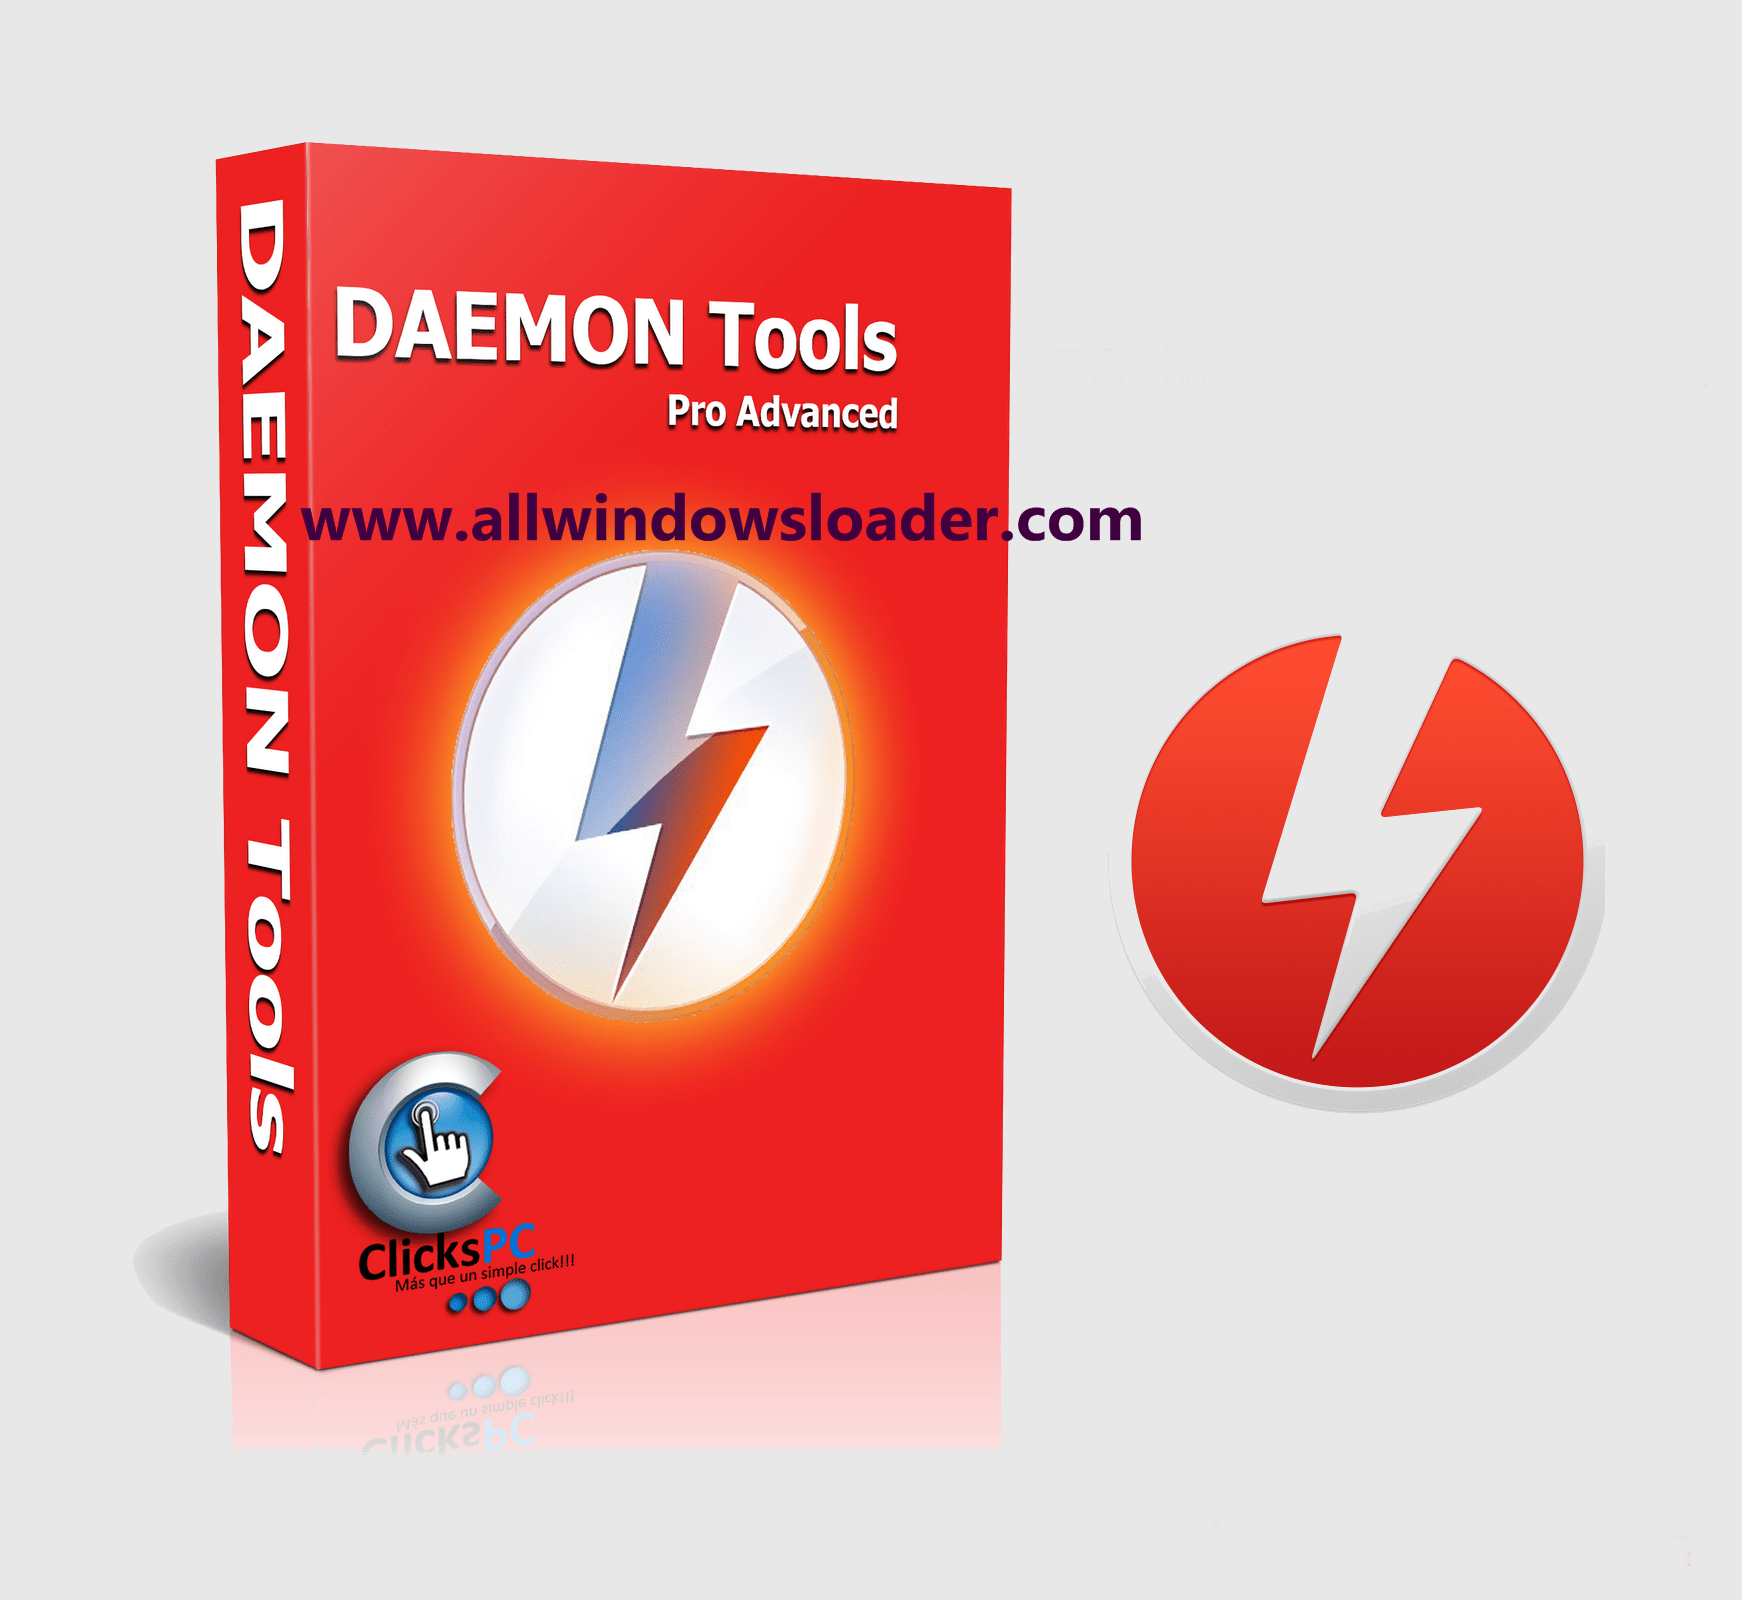 DAEMON Tools Pro 8.3.0.0759 Crack with Serial Key 2020